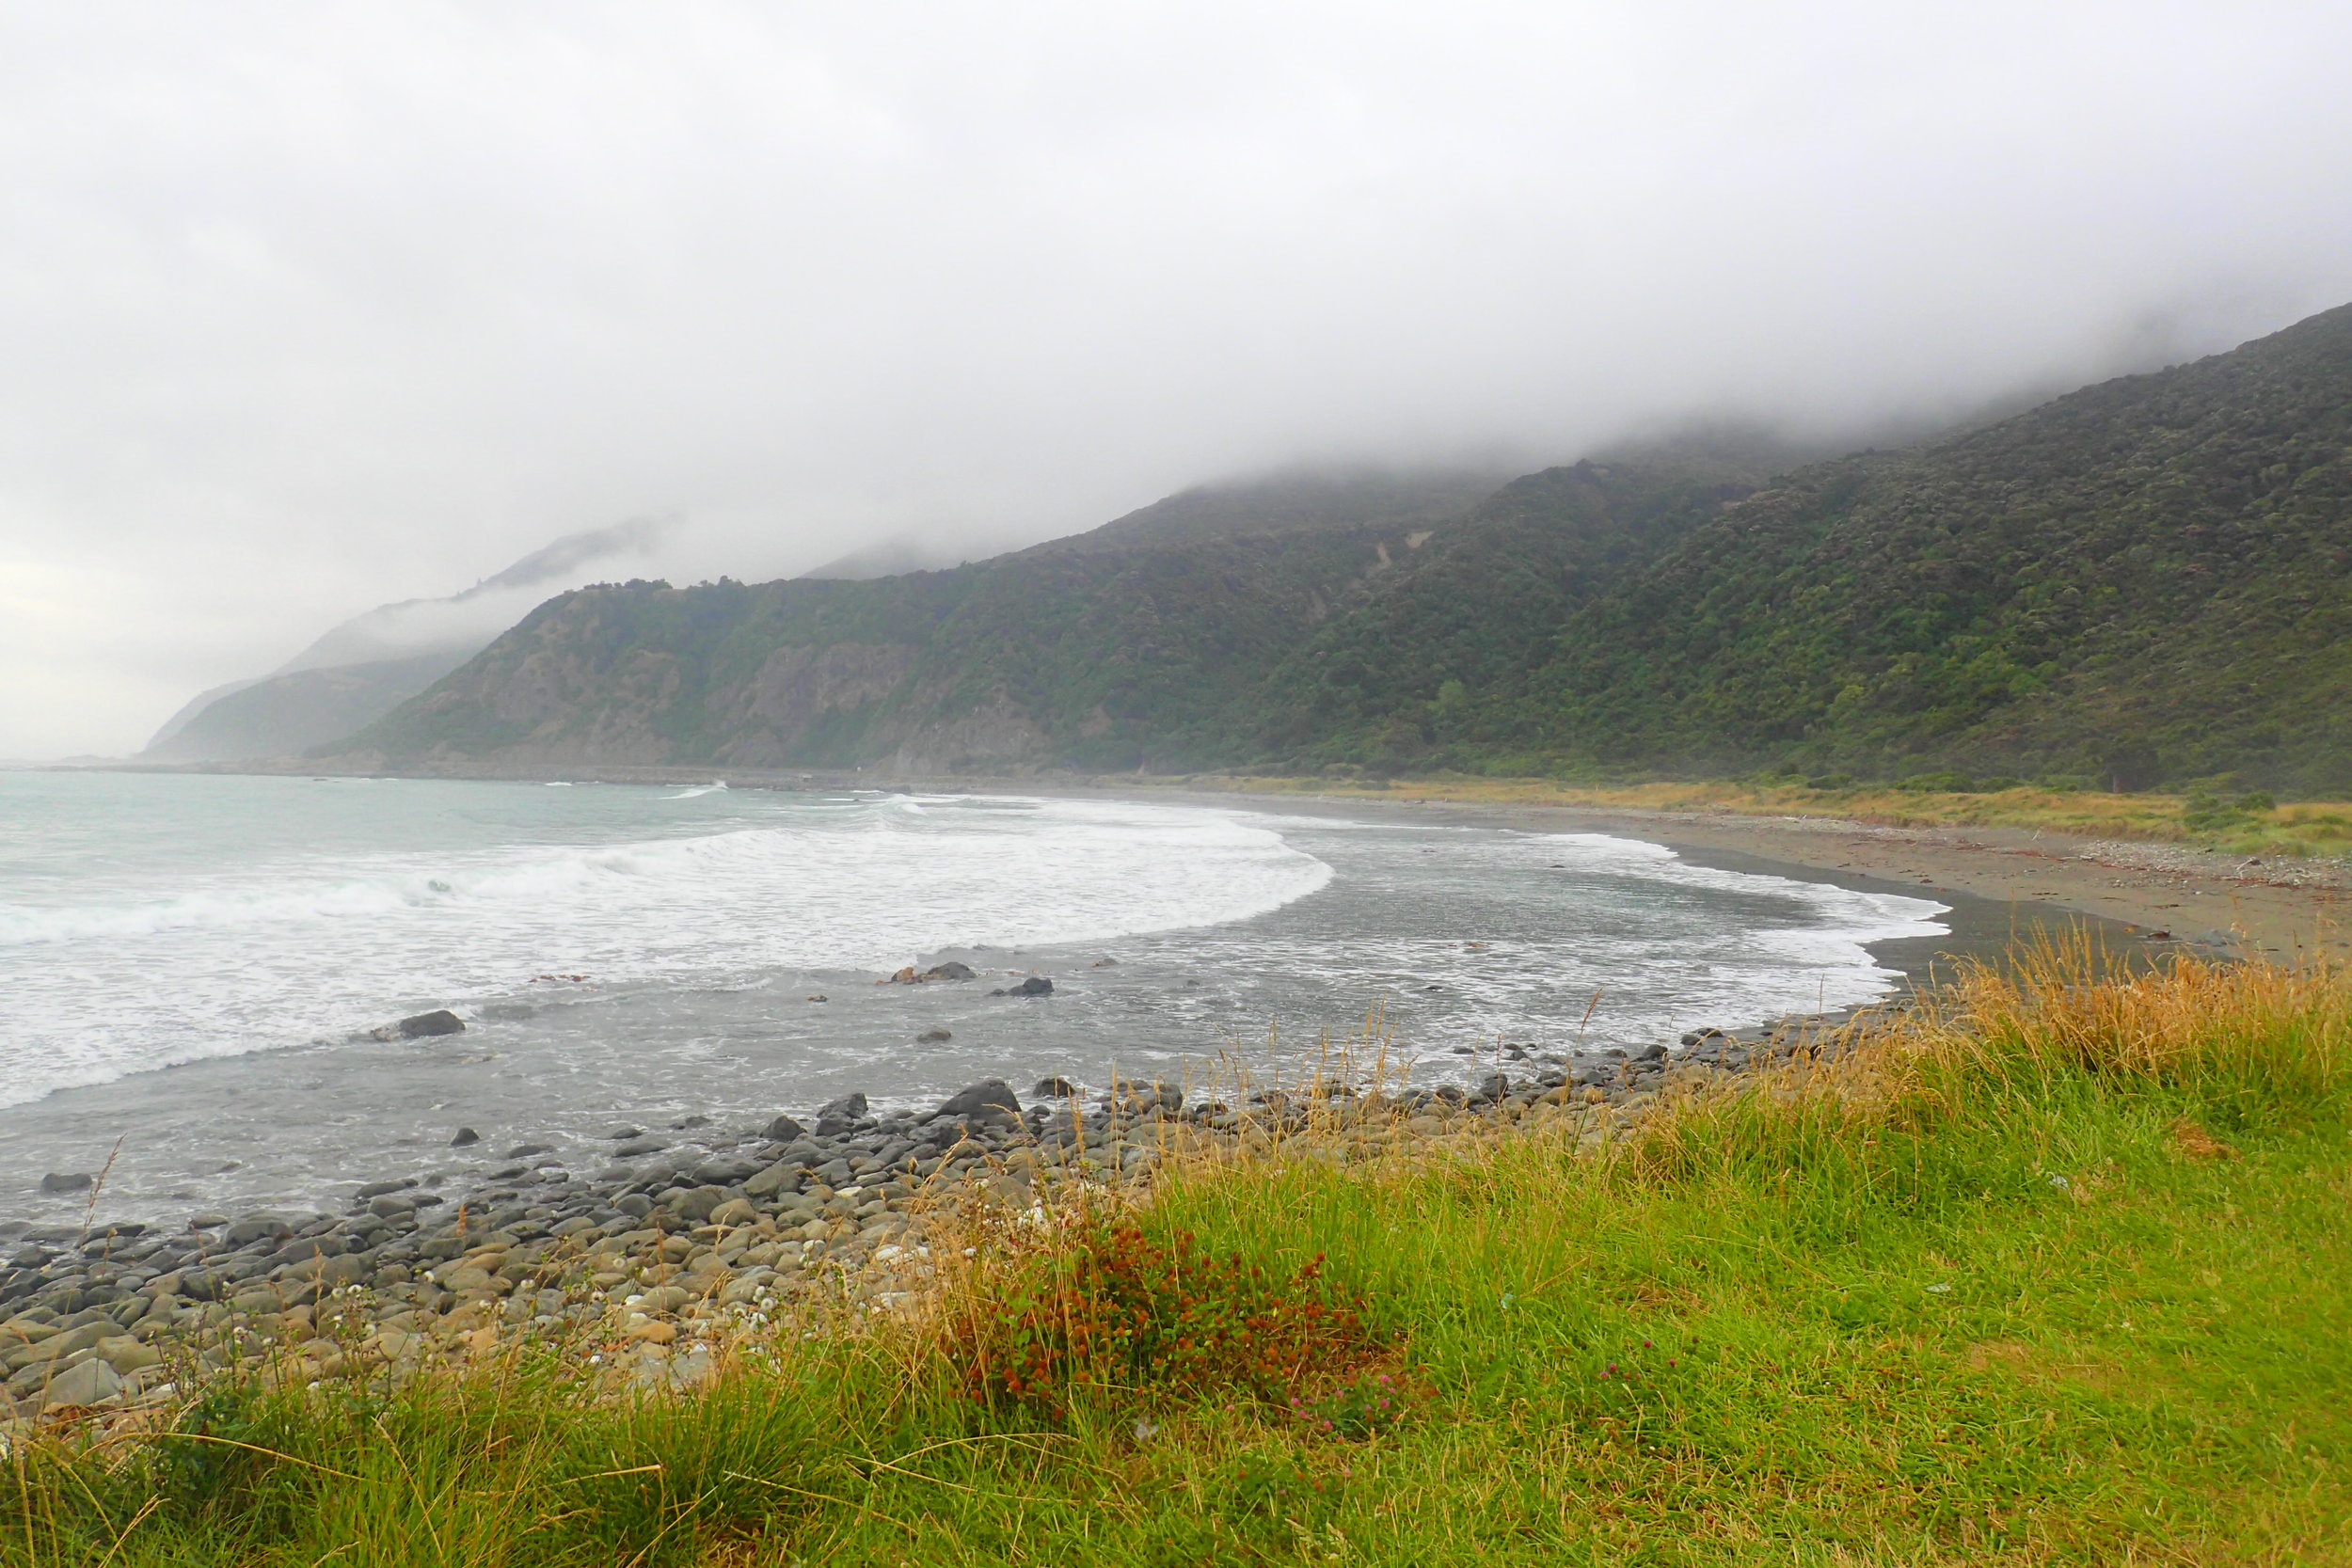 Image taken at a campsite in 2015 near Kairkoura on the east coast of New Zealand's south island